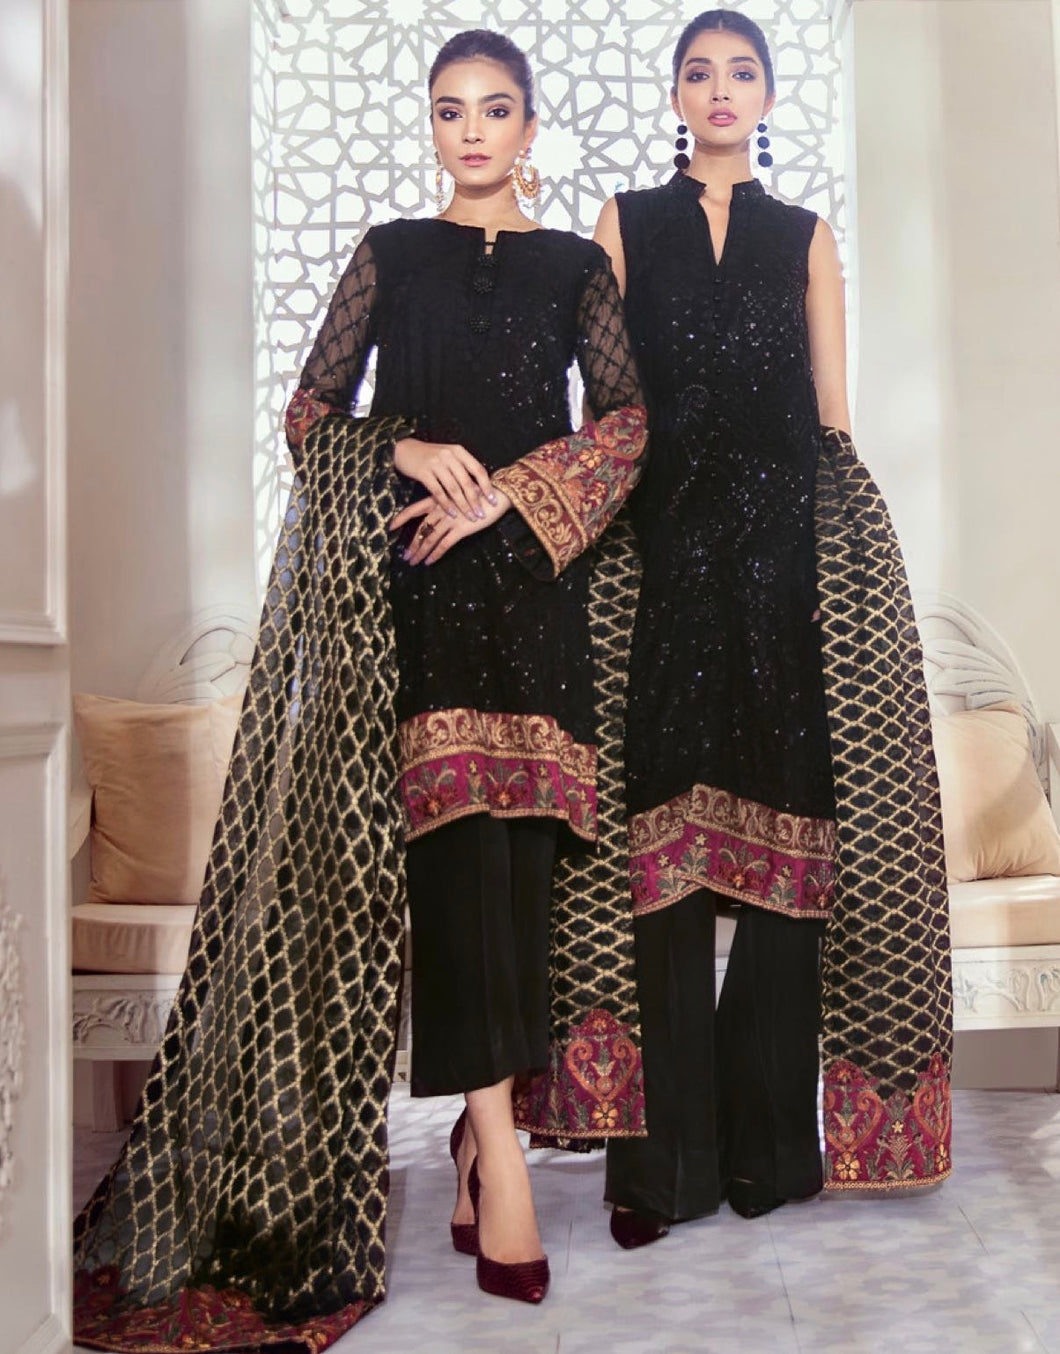 Iznik Designer Suit Wedding 2020- ID-01 BLOOMING RAVEN